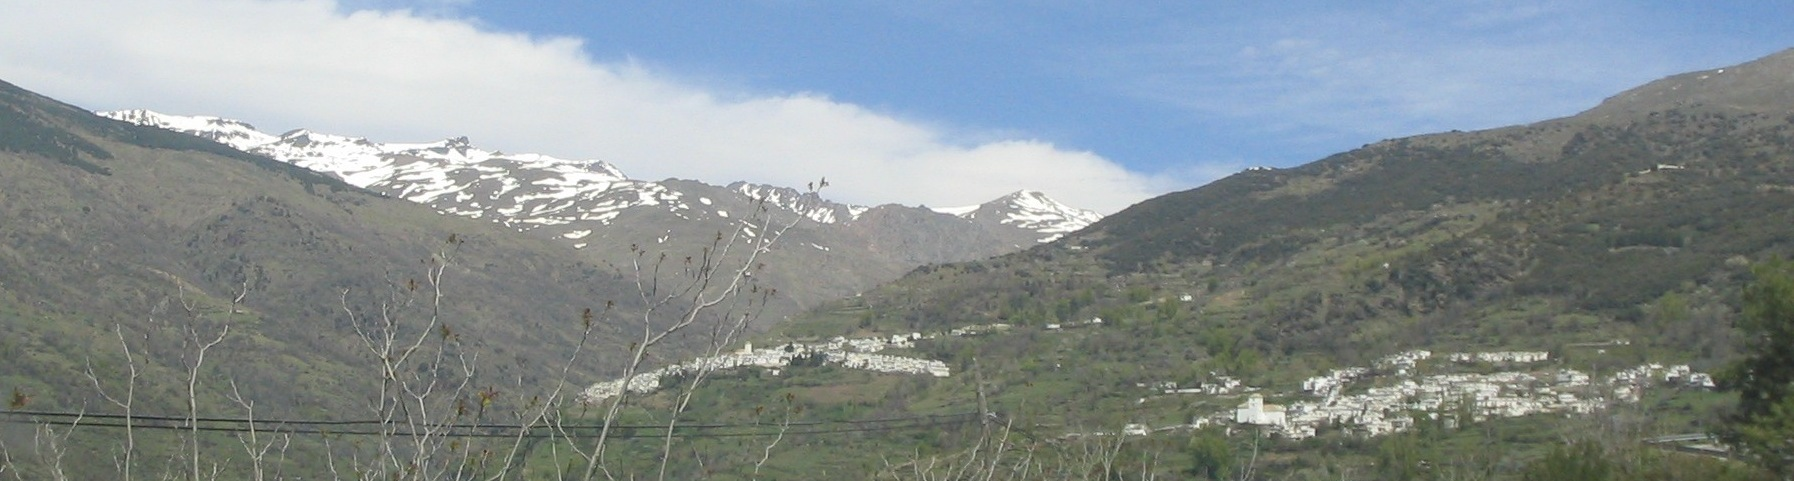 http://upload.wikimedia.org/wikipedia/commons/8/86/Alpujarras-pueblos.JPG